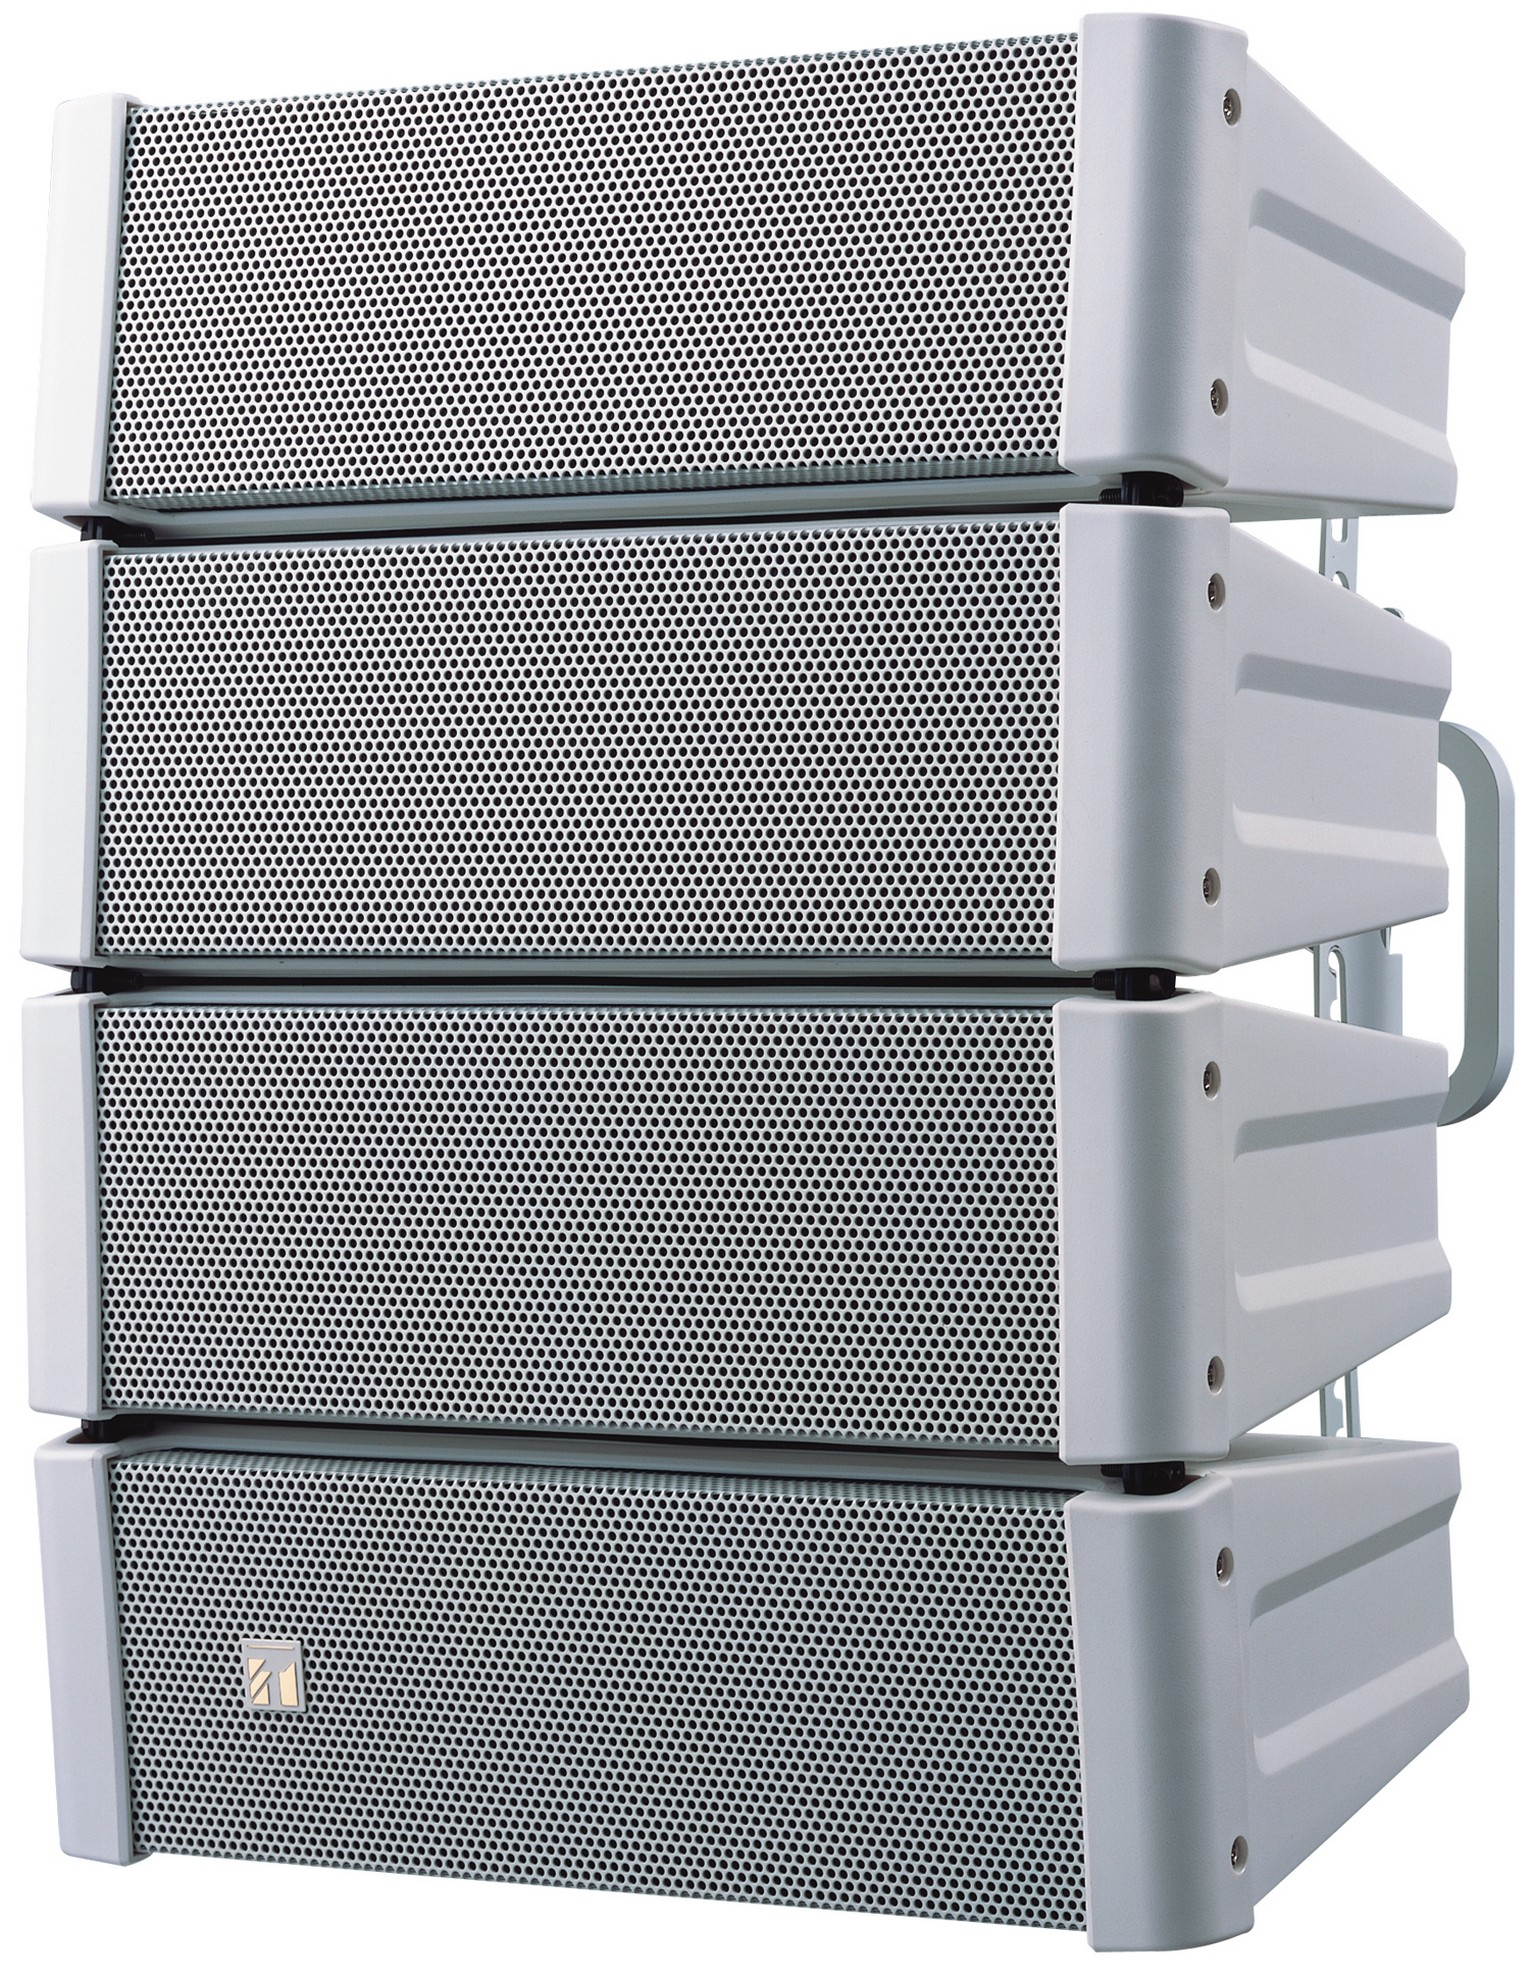 TOA Electronics HX-5W Variable Dispersion Line Array Speaker (White)